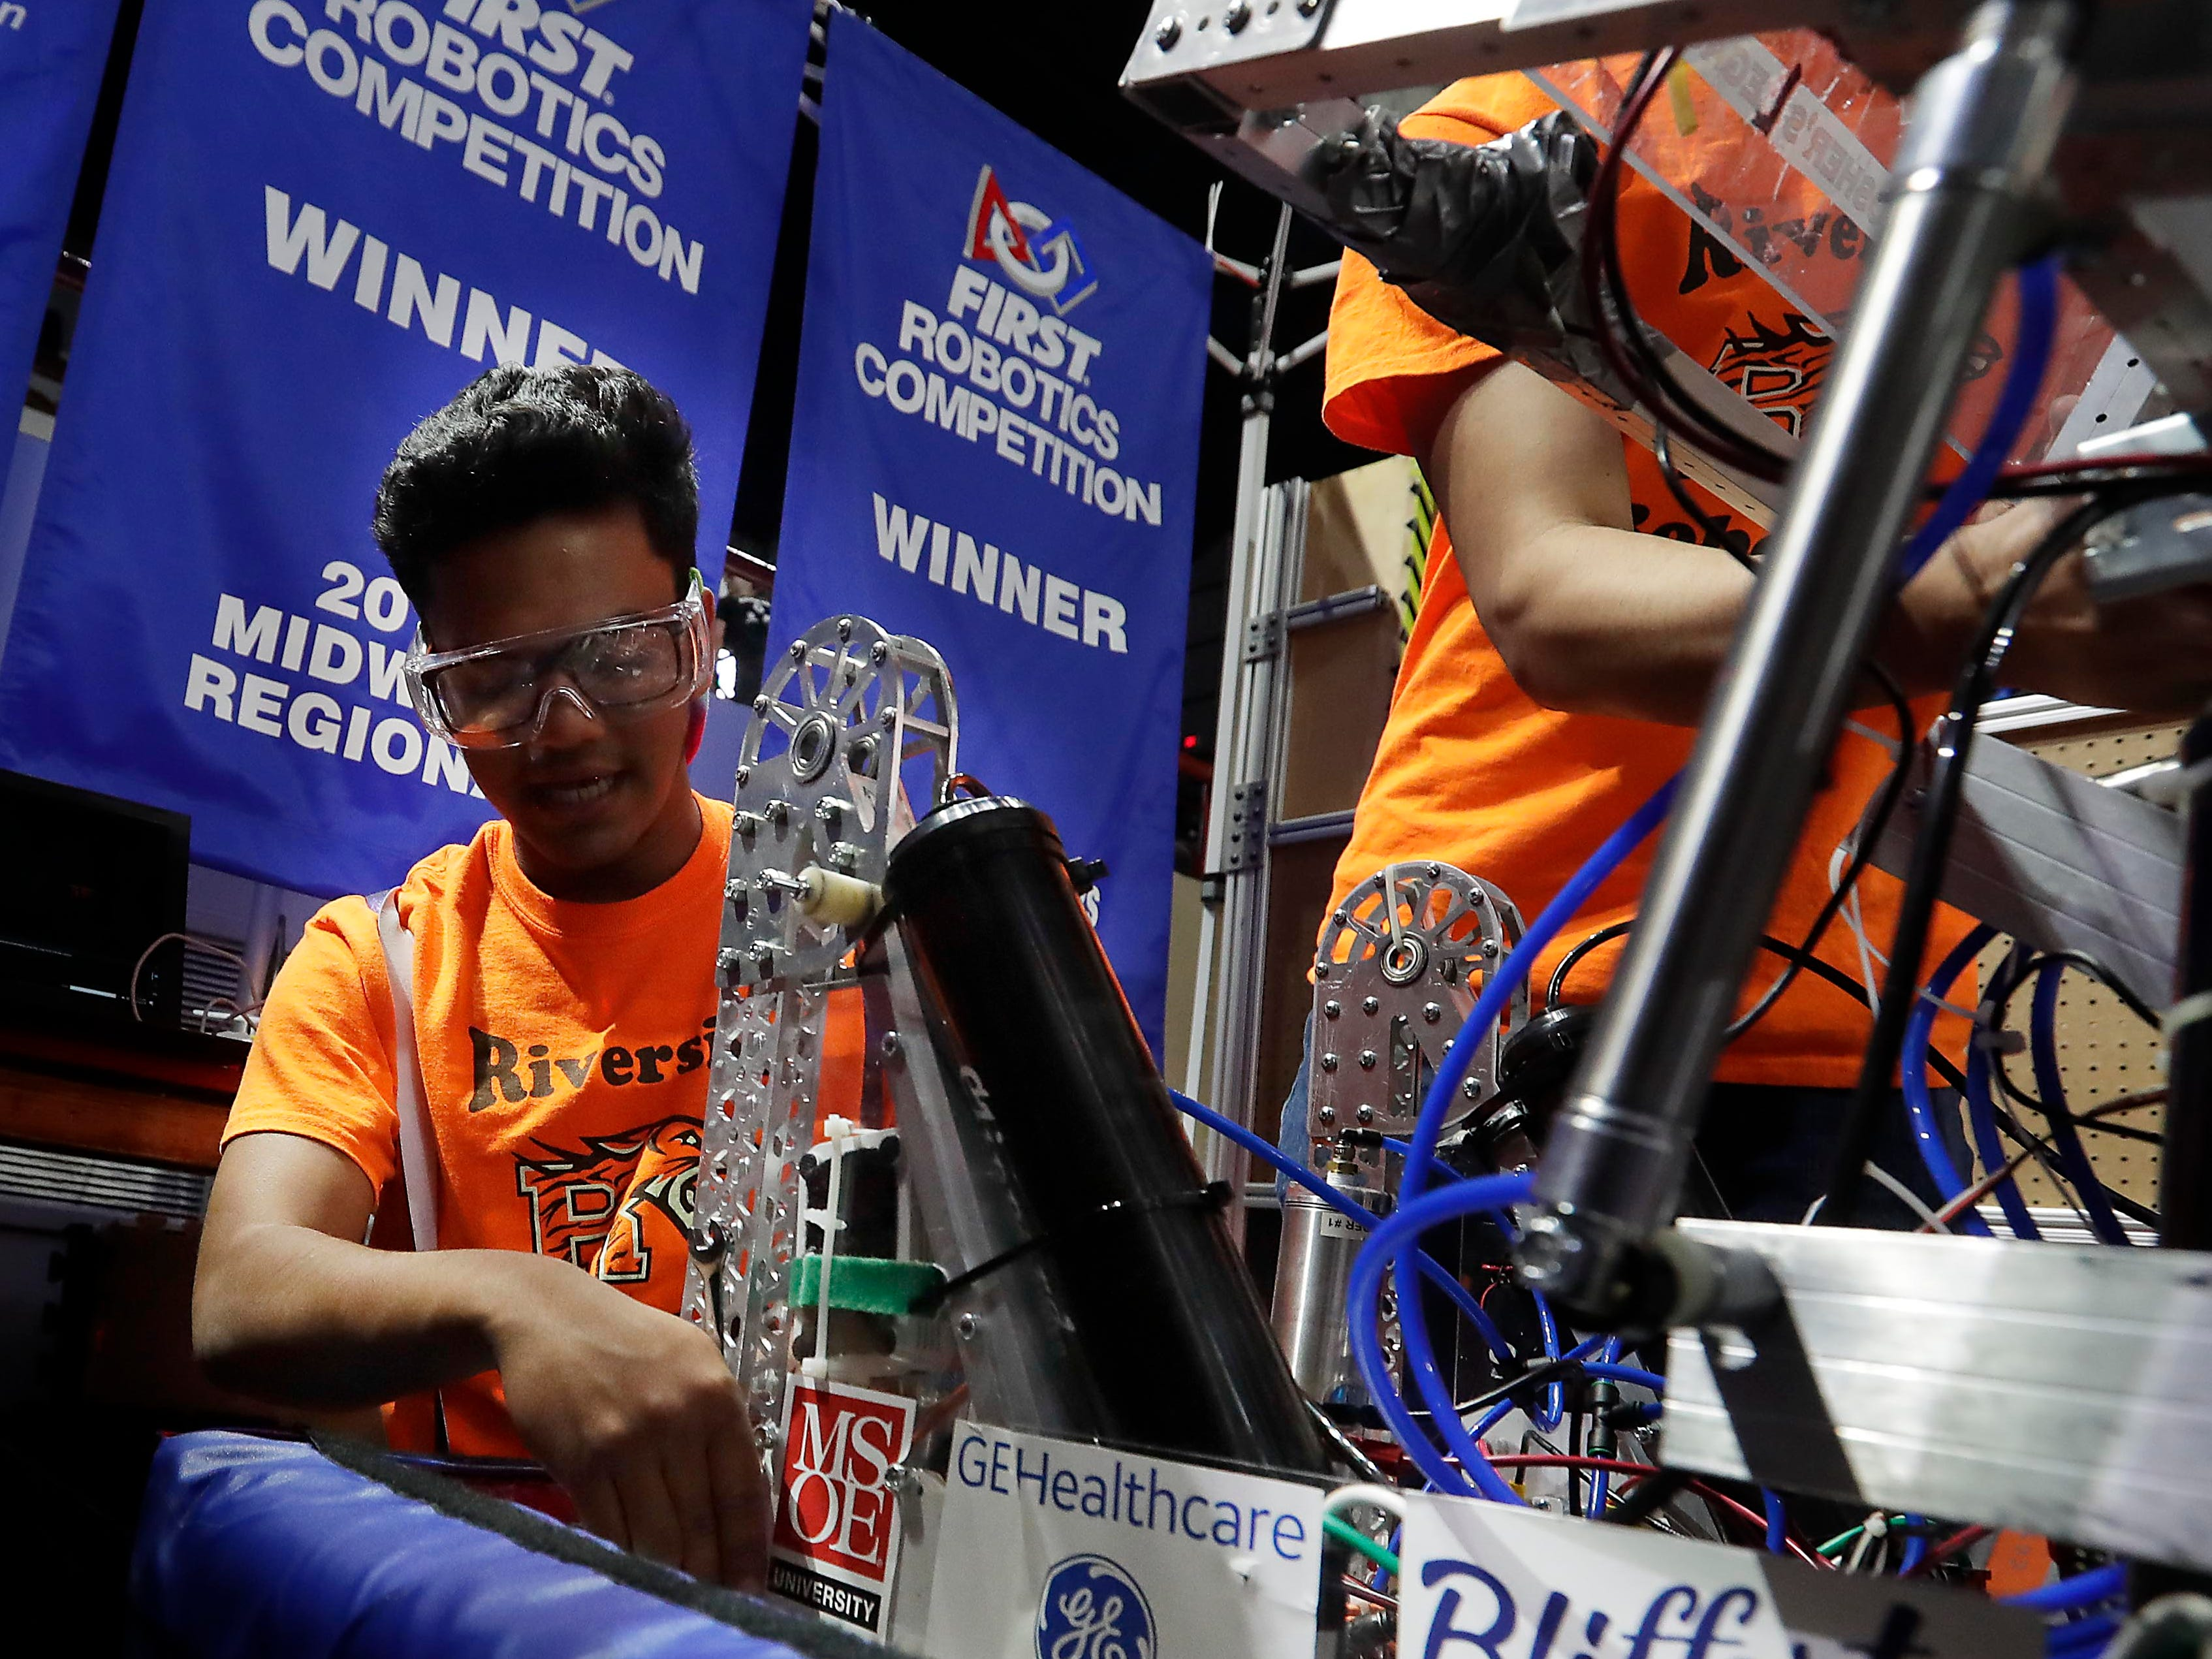 Riverside RoboTigers pit crew team member Yannang Soe tightens a connection on the robot between competitions.